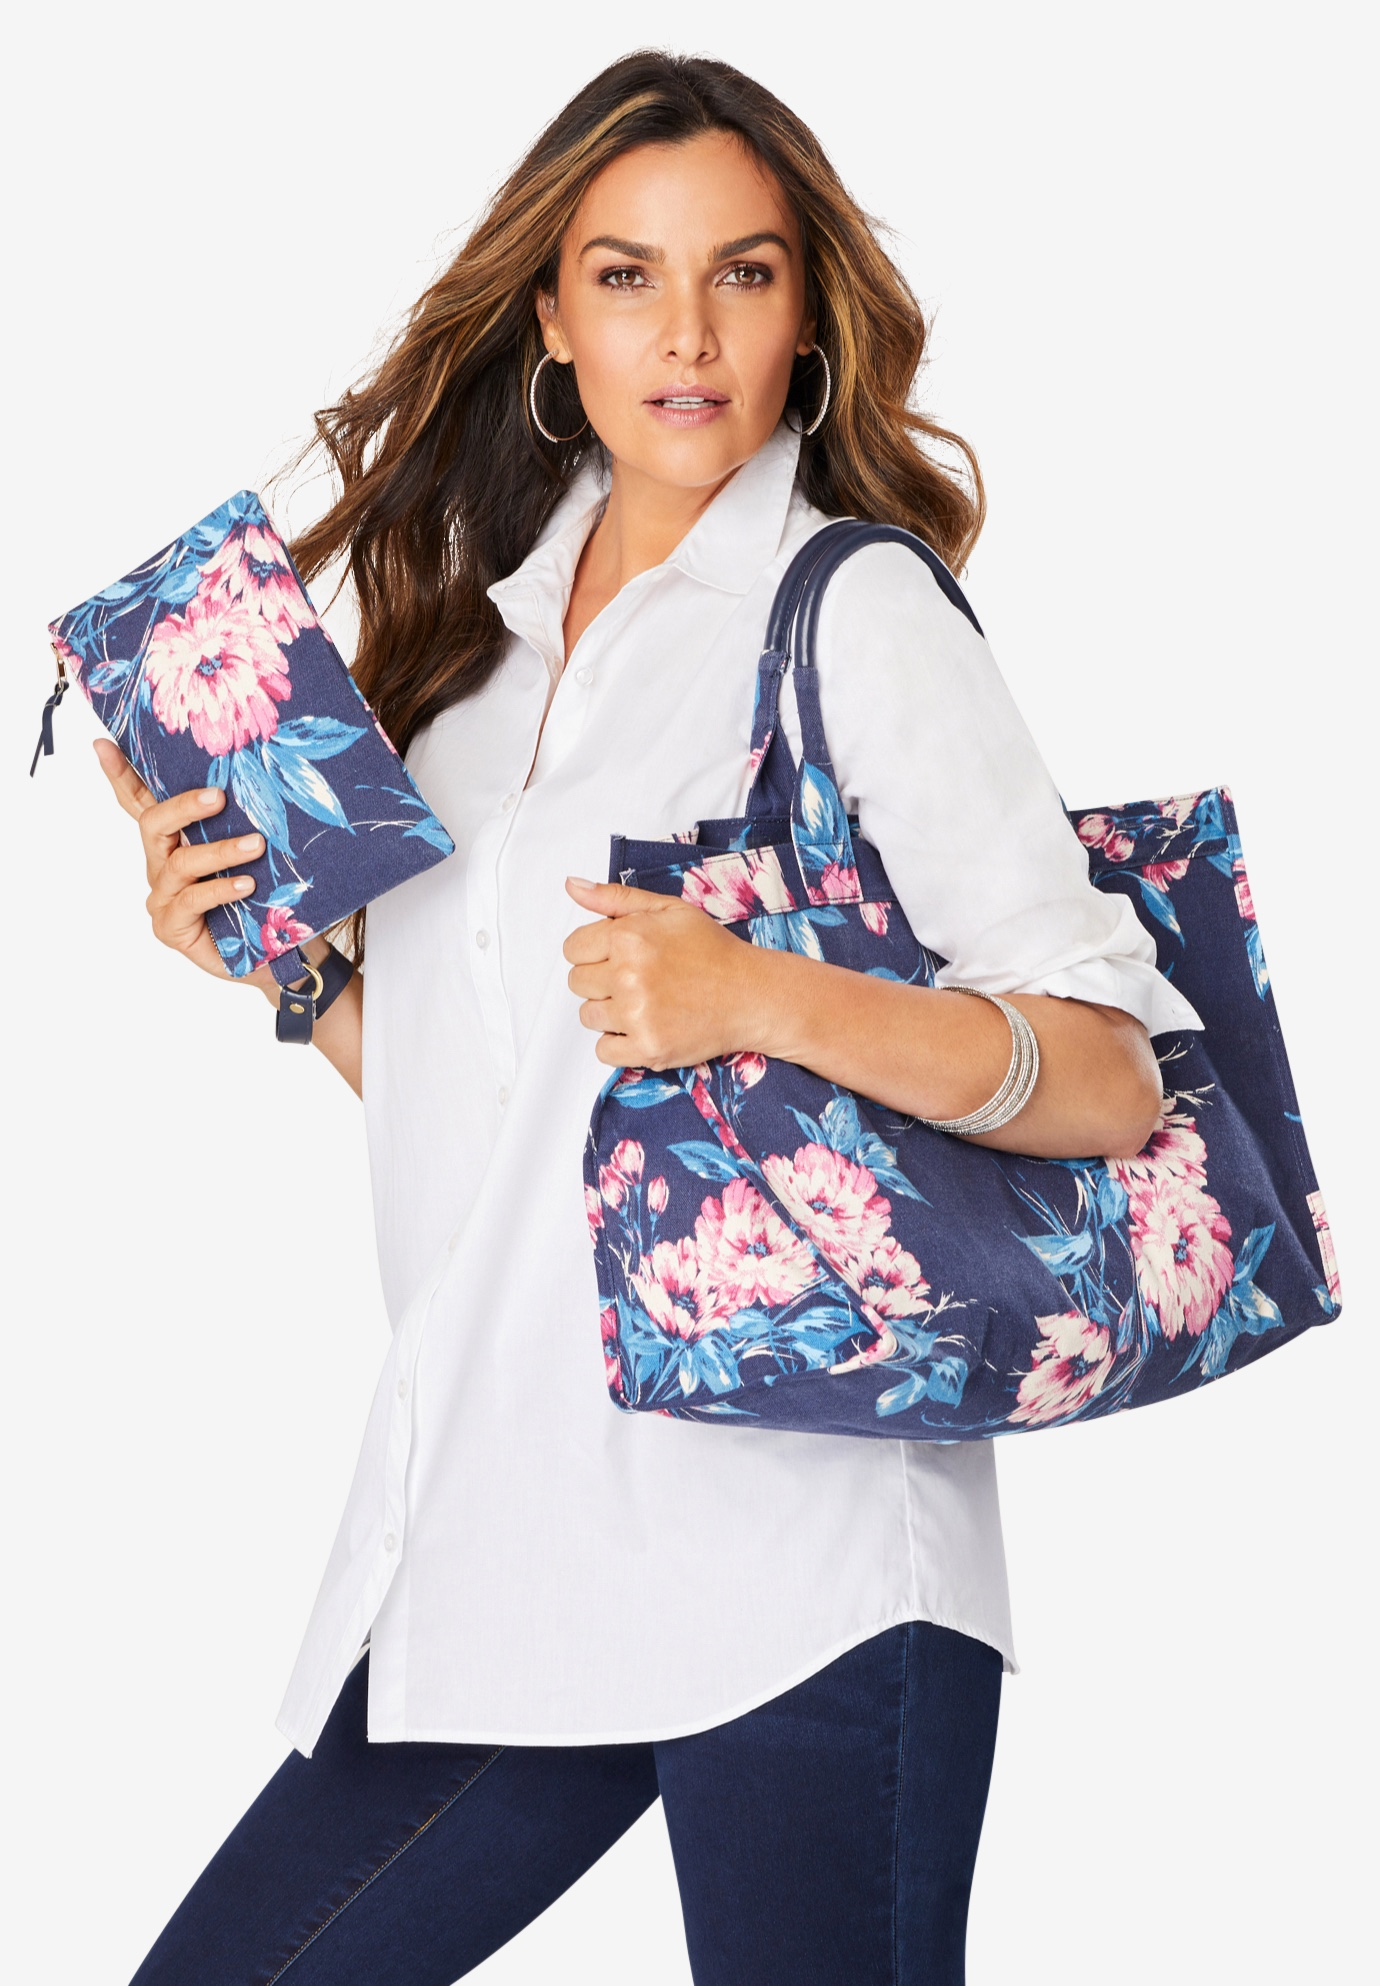 2-Piece Tote Set, NAVY VINTAGE BOUQUET